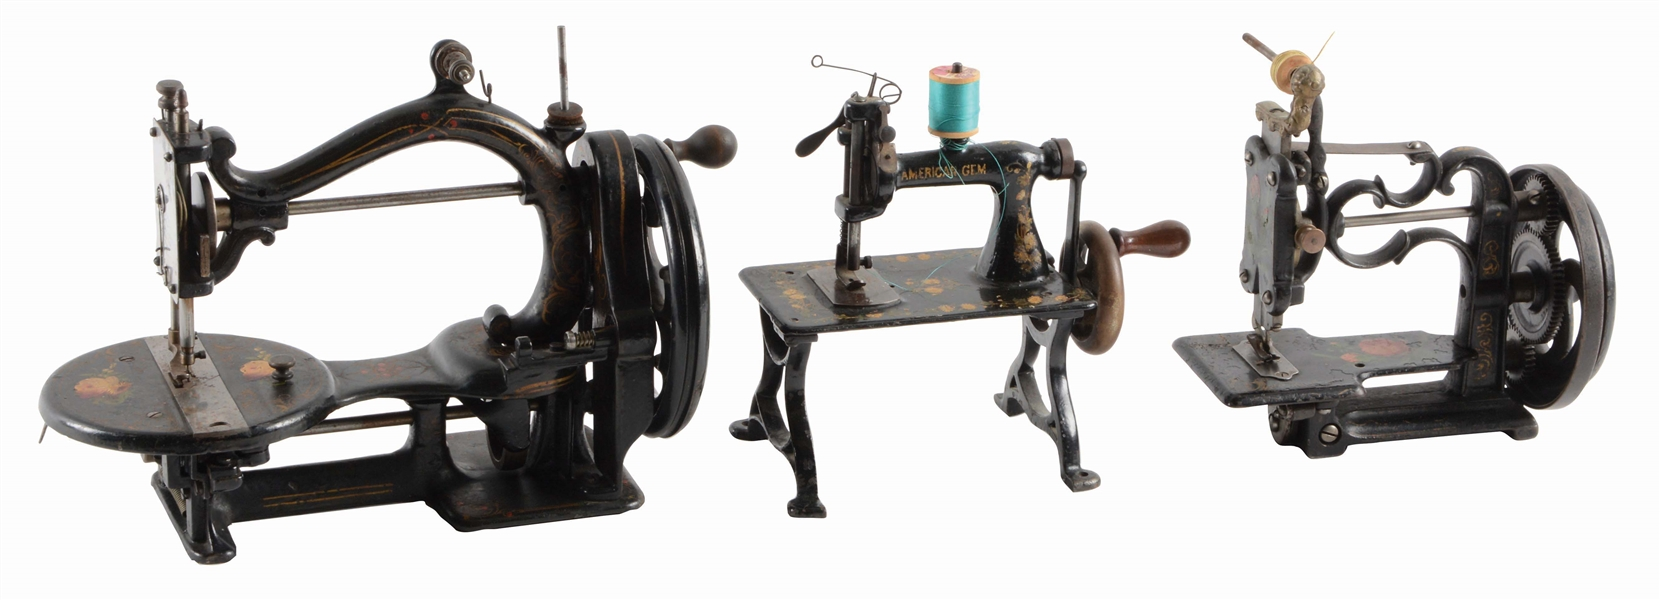 LOT OF 3: SEWING MACHINES BY AMERICAN GEM.